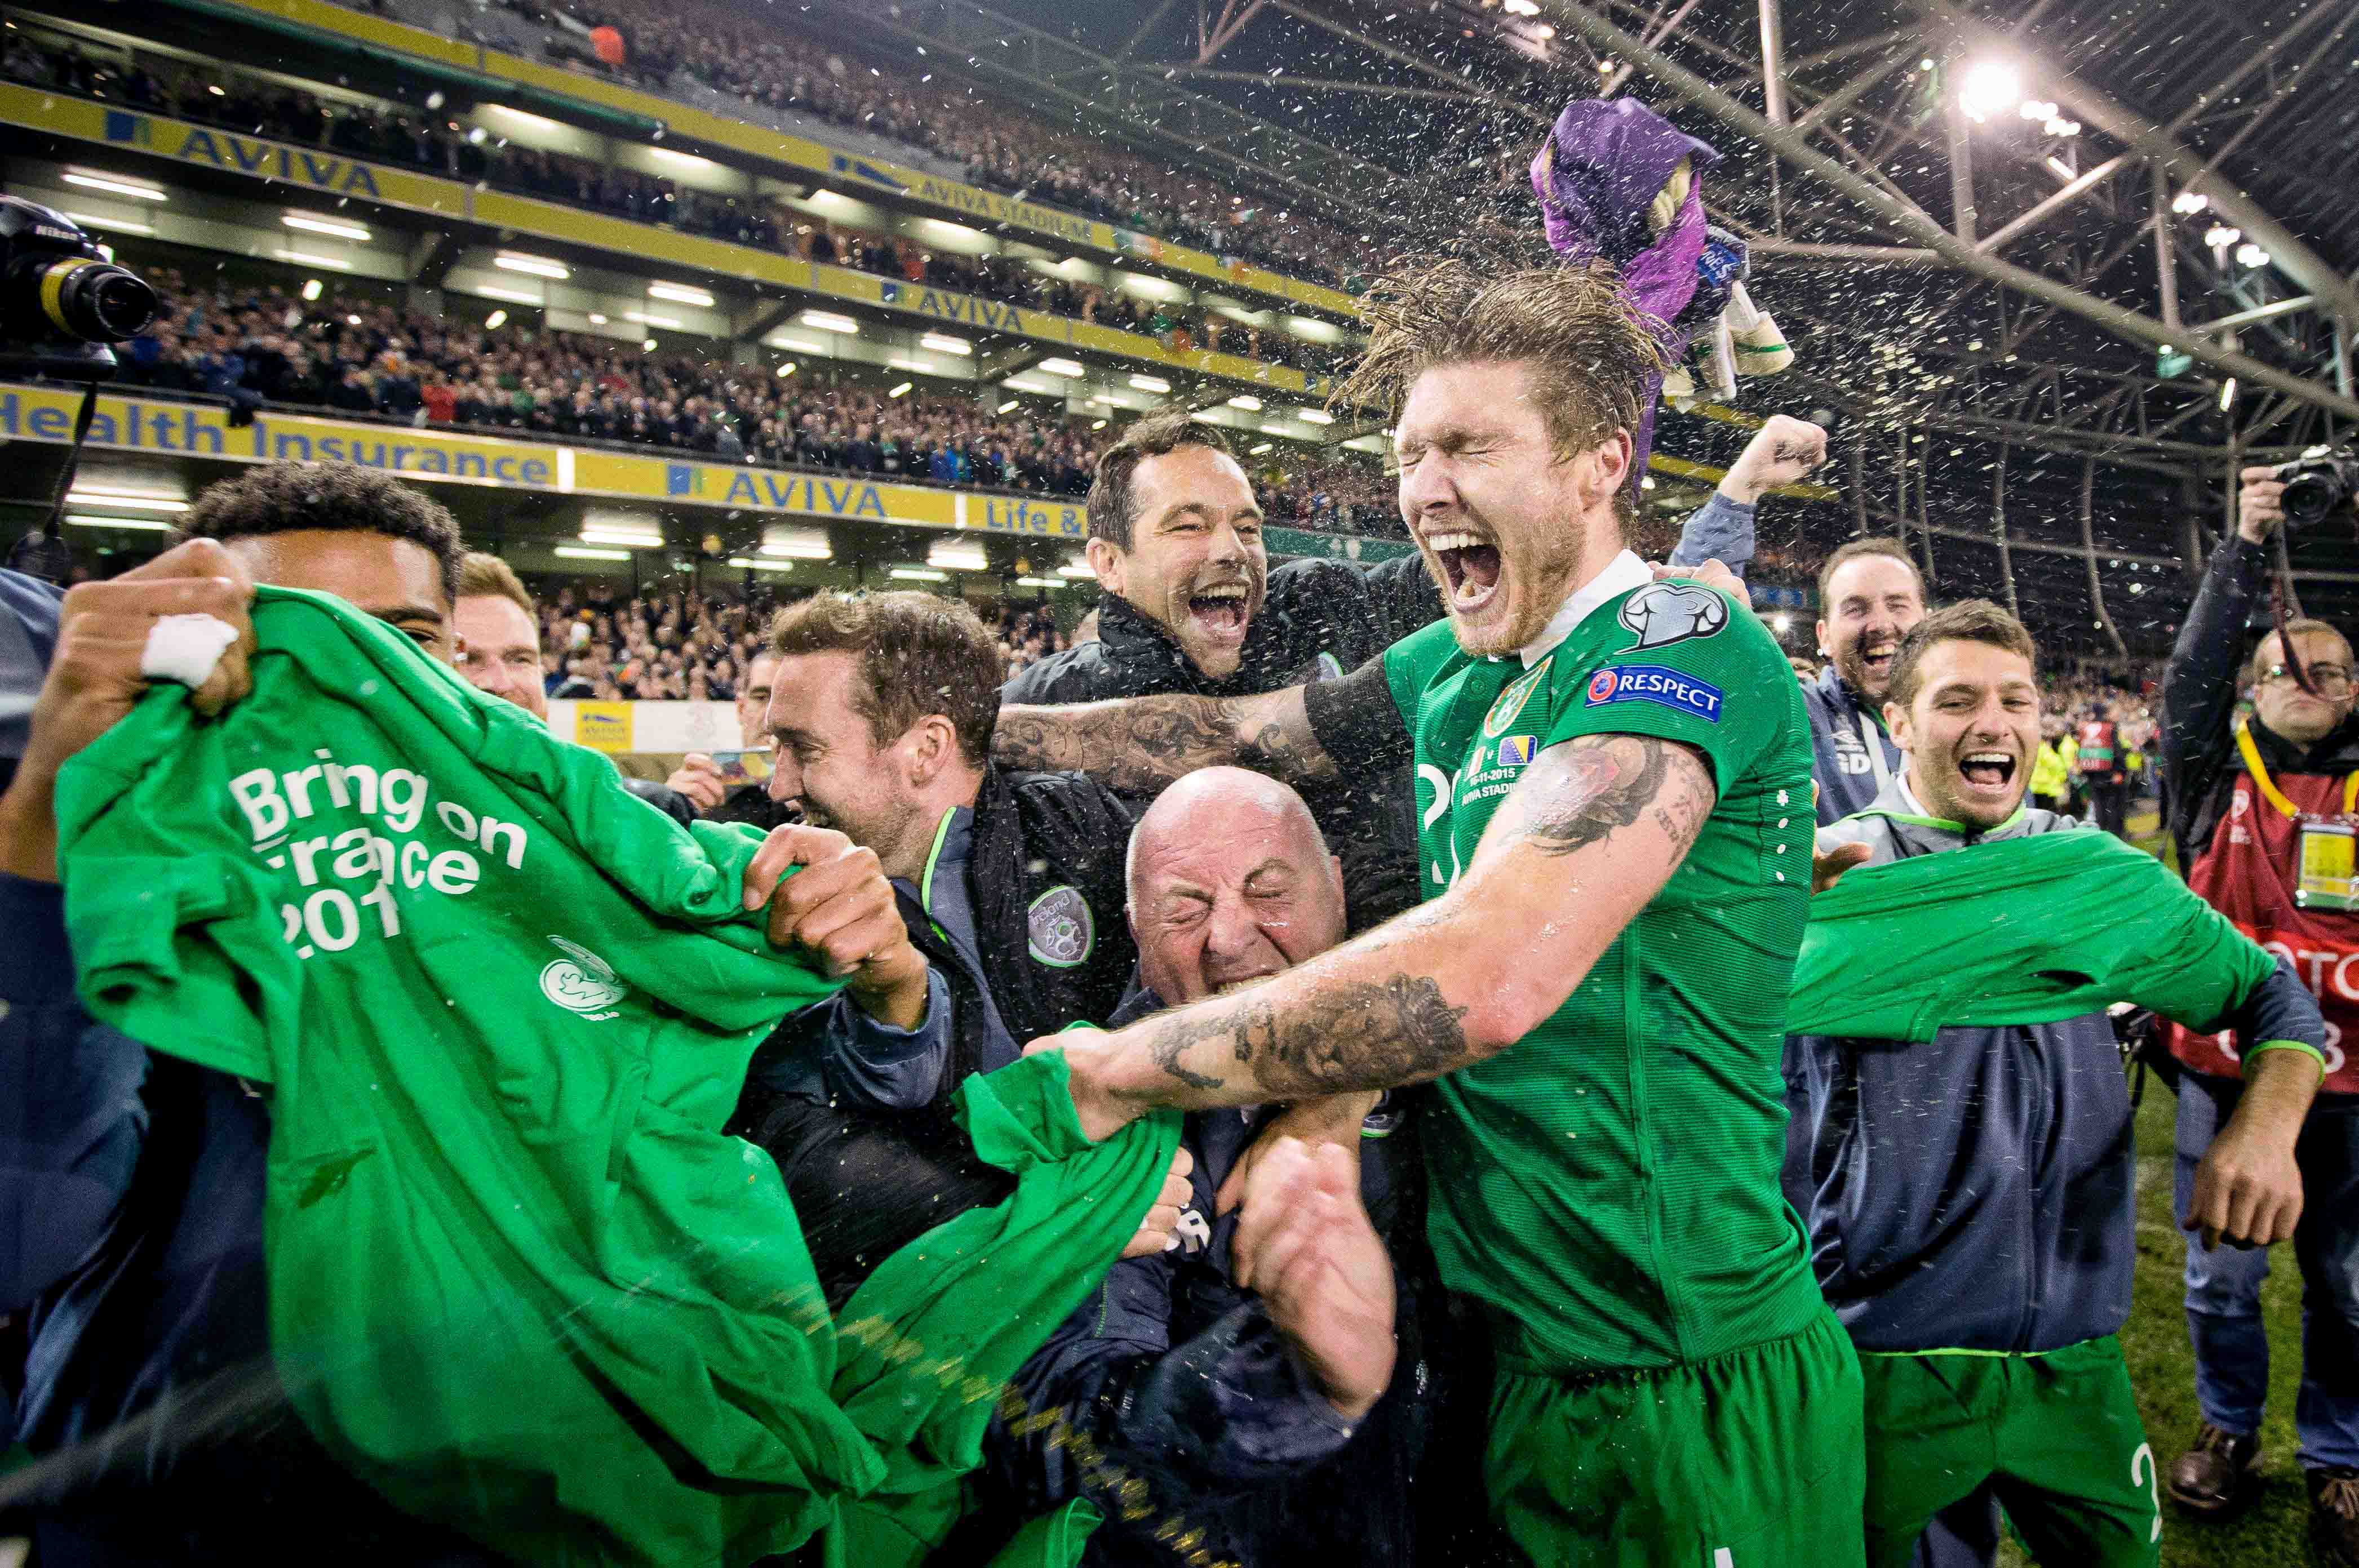 Wild celebrations at the Aviva after Ireland secured a 3-1 aggregate victory over Bosnia-Herzogovina to book a place at Euro 2016